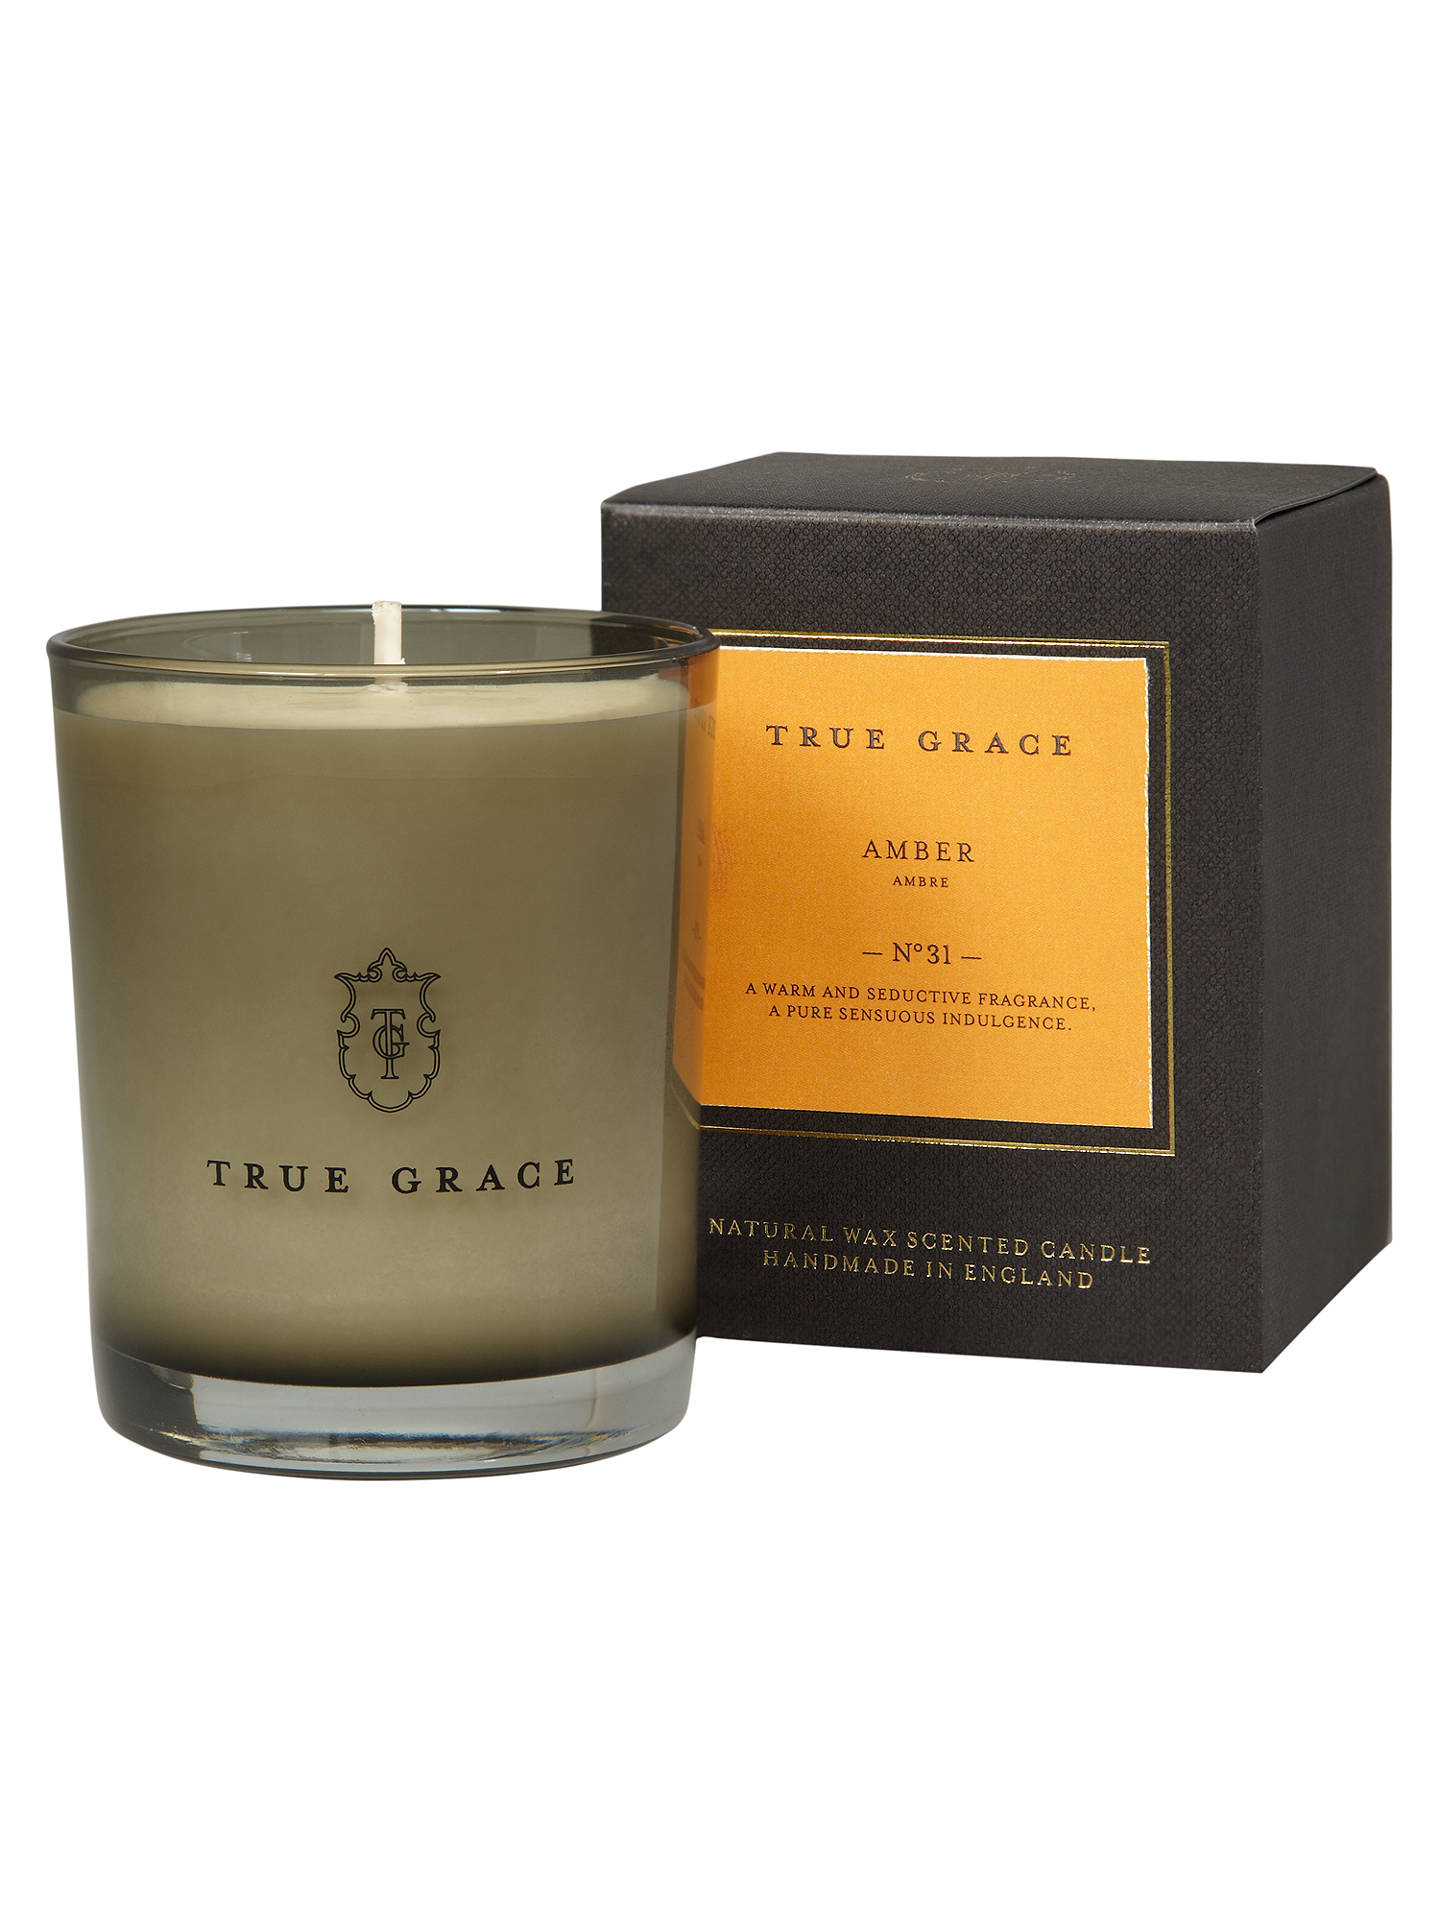 Buy True Grace Manor Amber Scented Candle Online at johnlewis.com